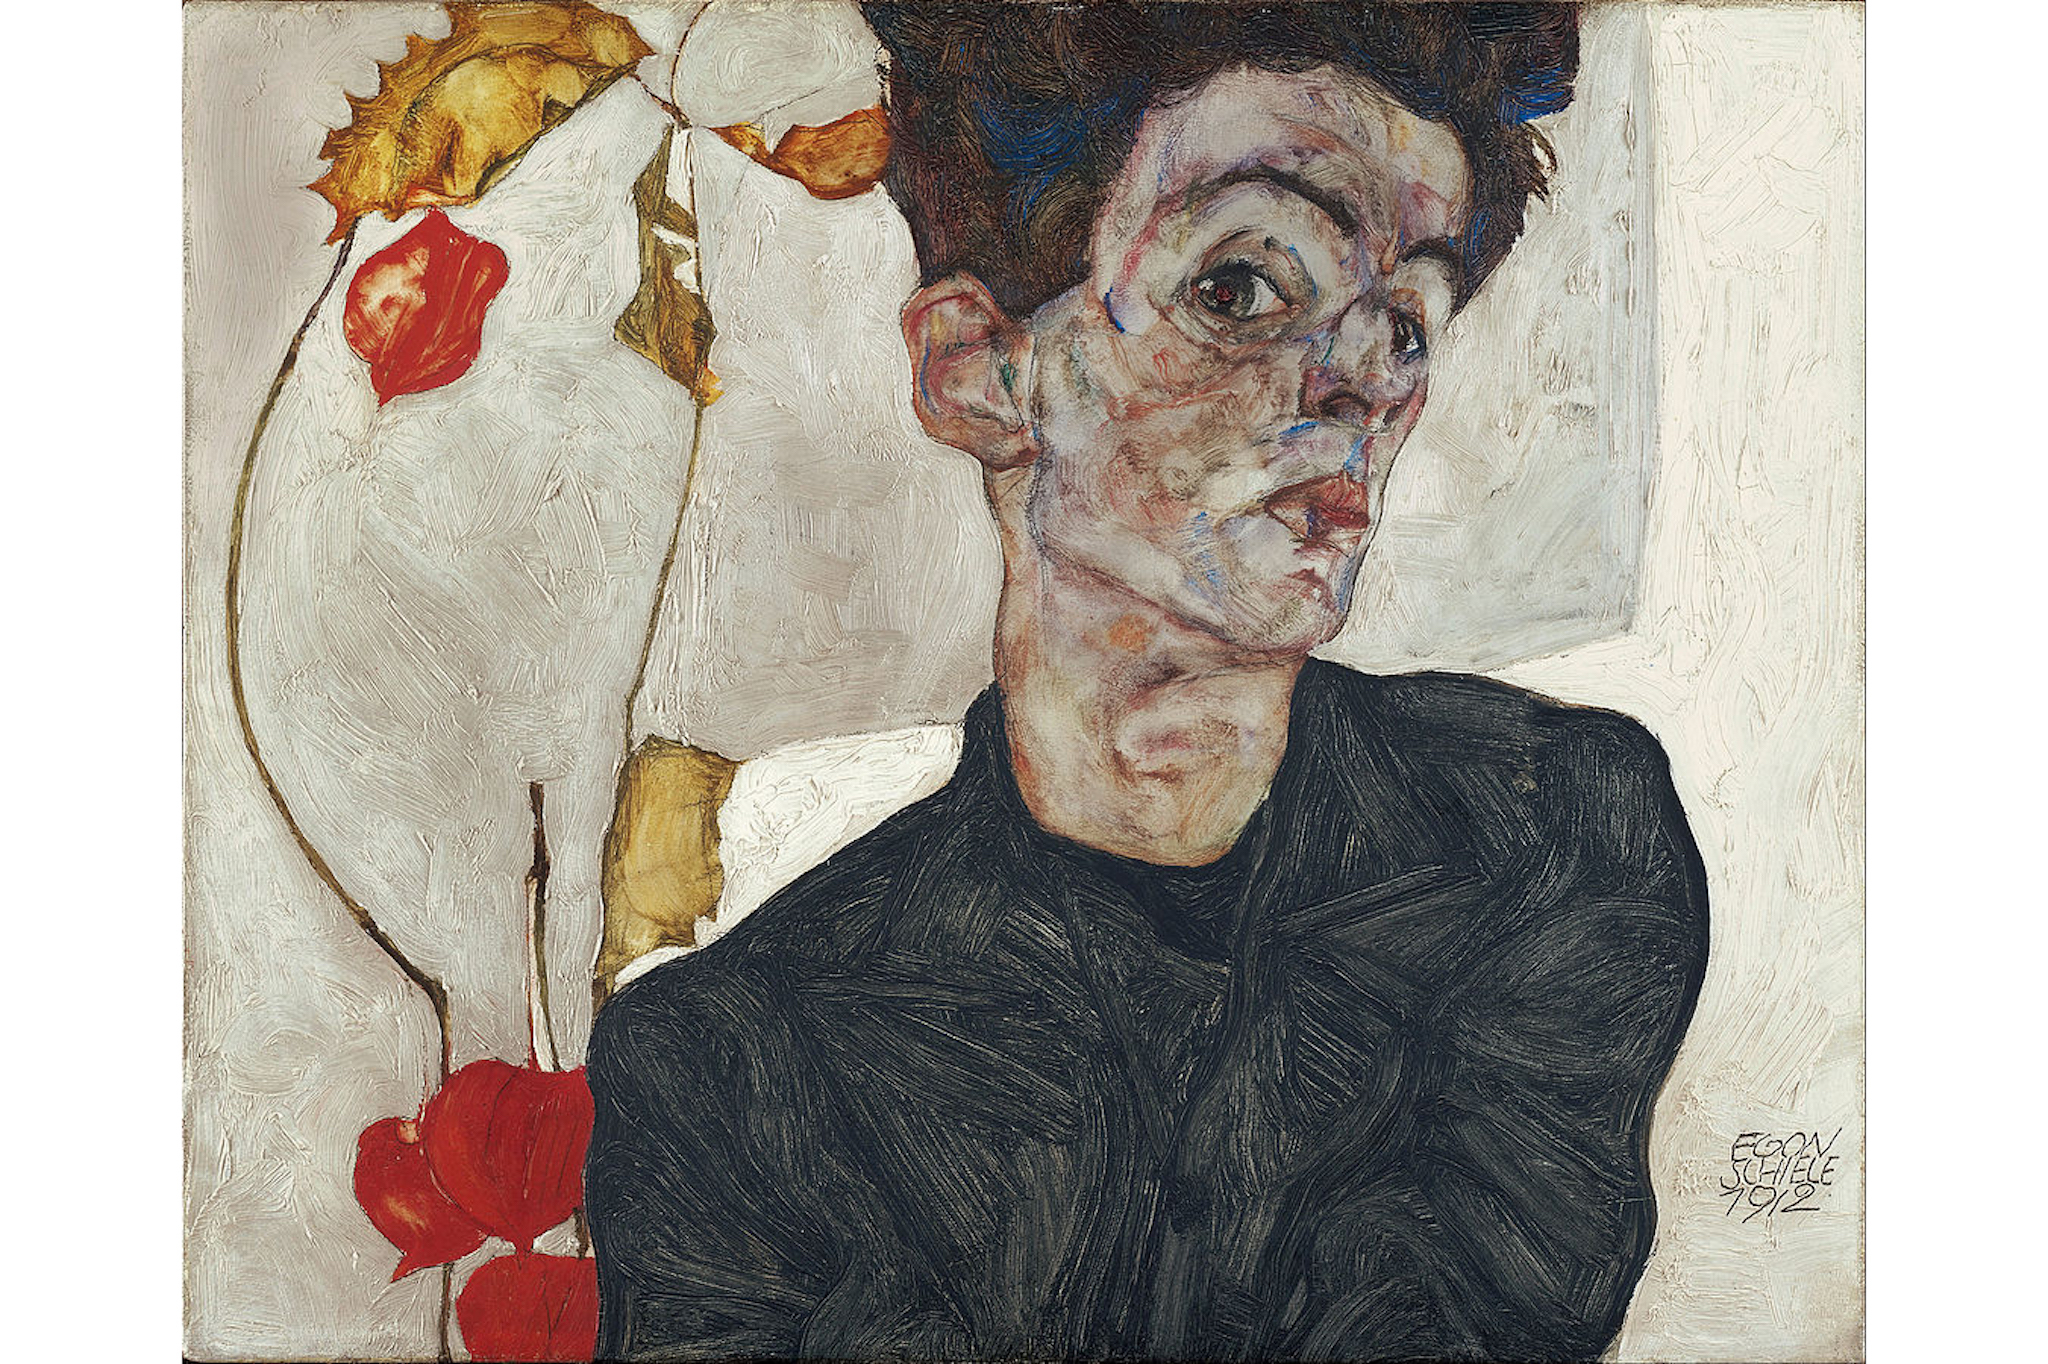 Egon Schiele, Self Portrait with Physalis, 1912